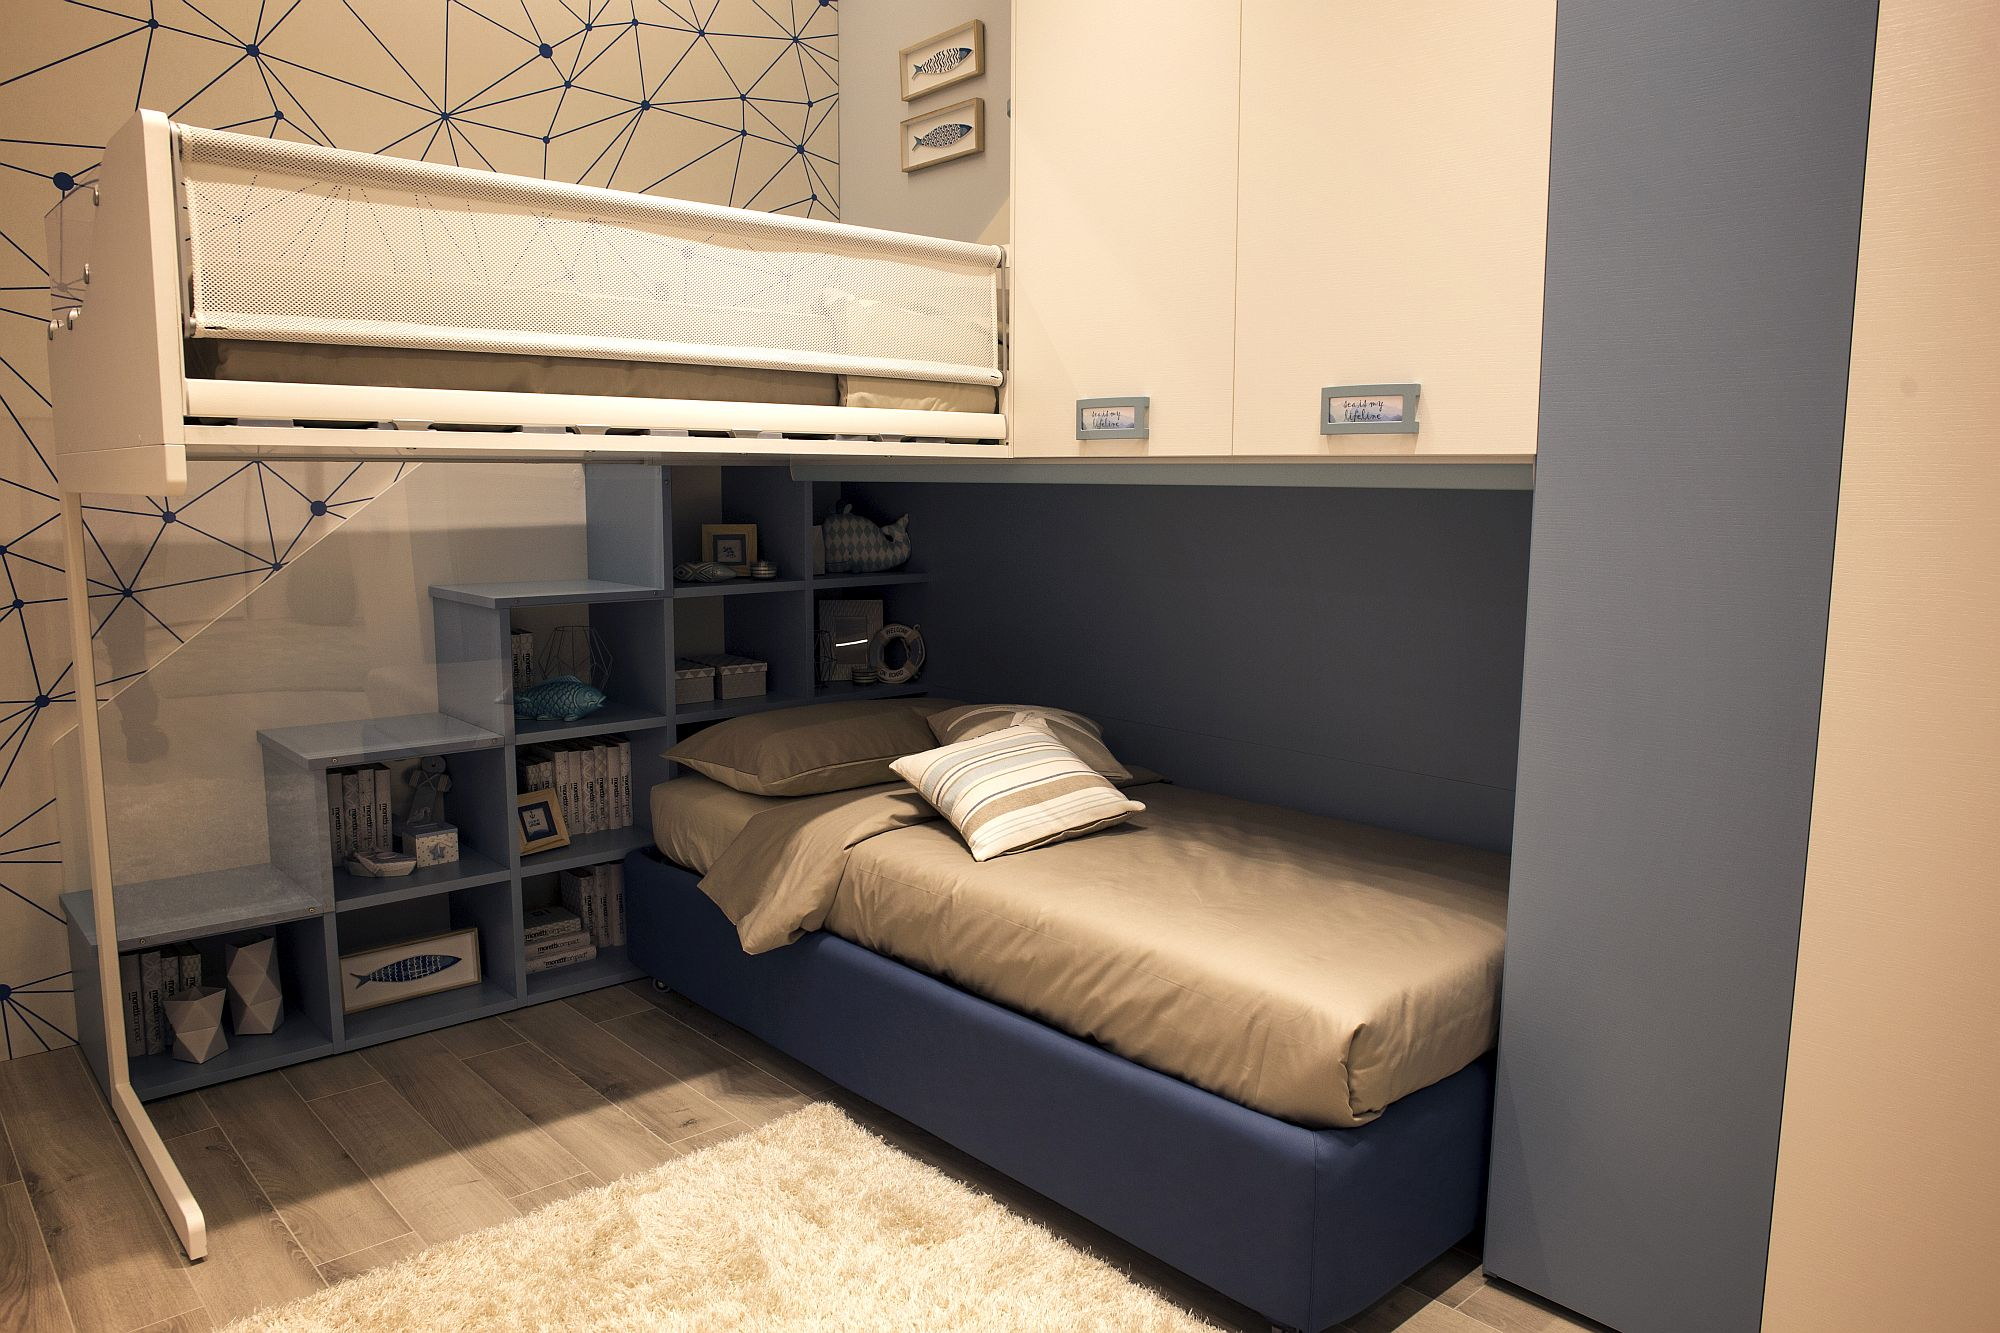 Picture of: 25 Space Savvy Small Kids Bedroom Solutions From Bunk Beds To Smart Shelves